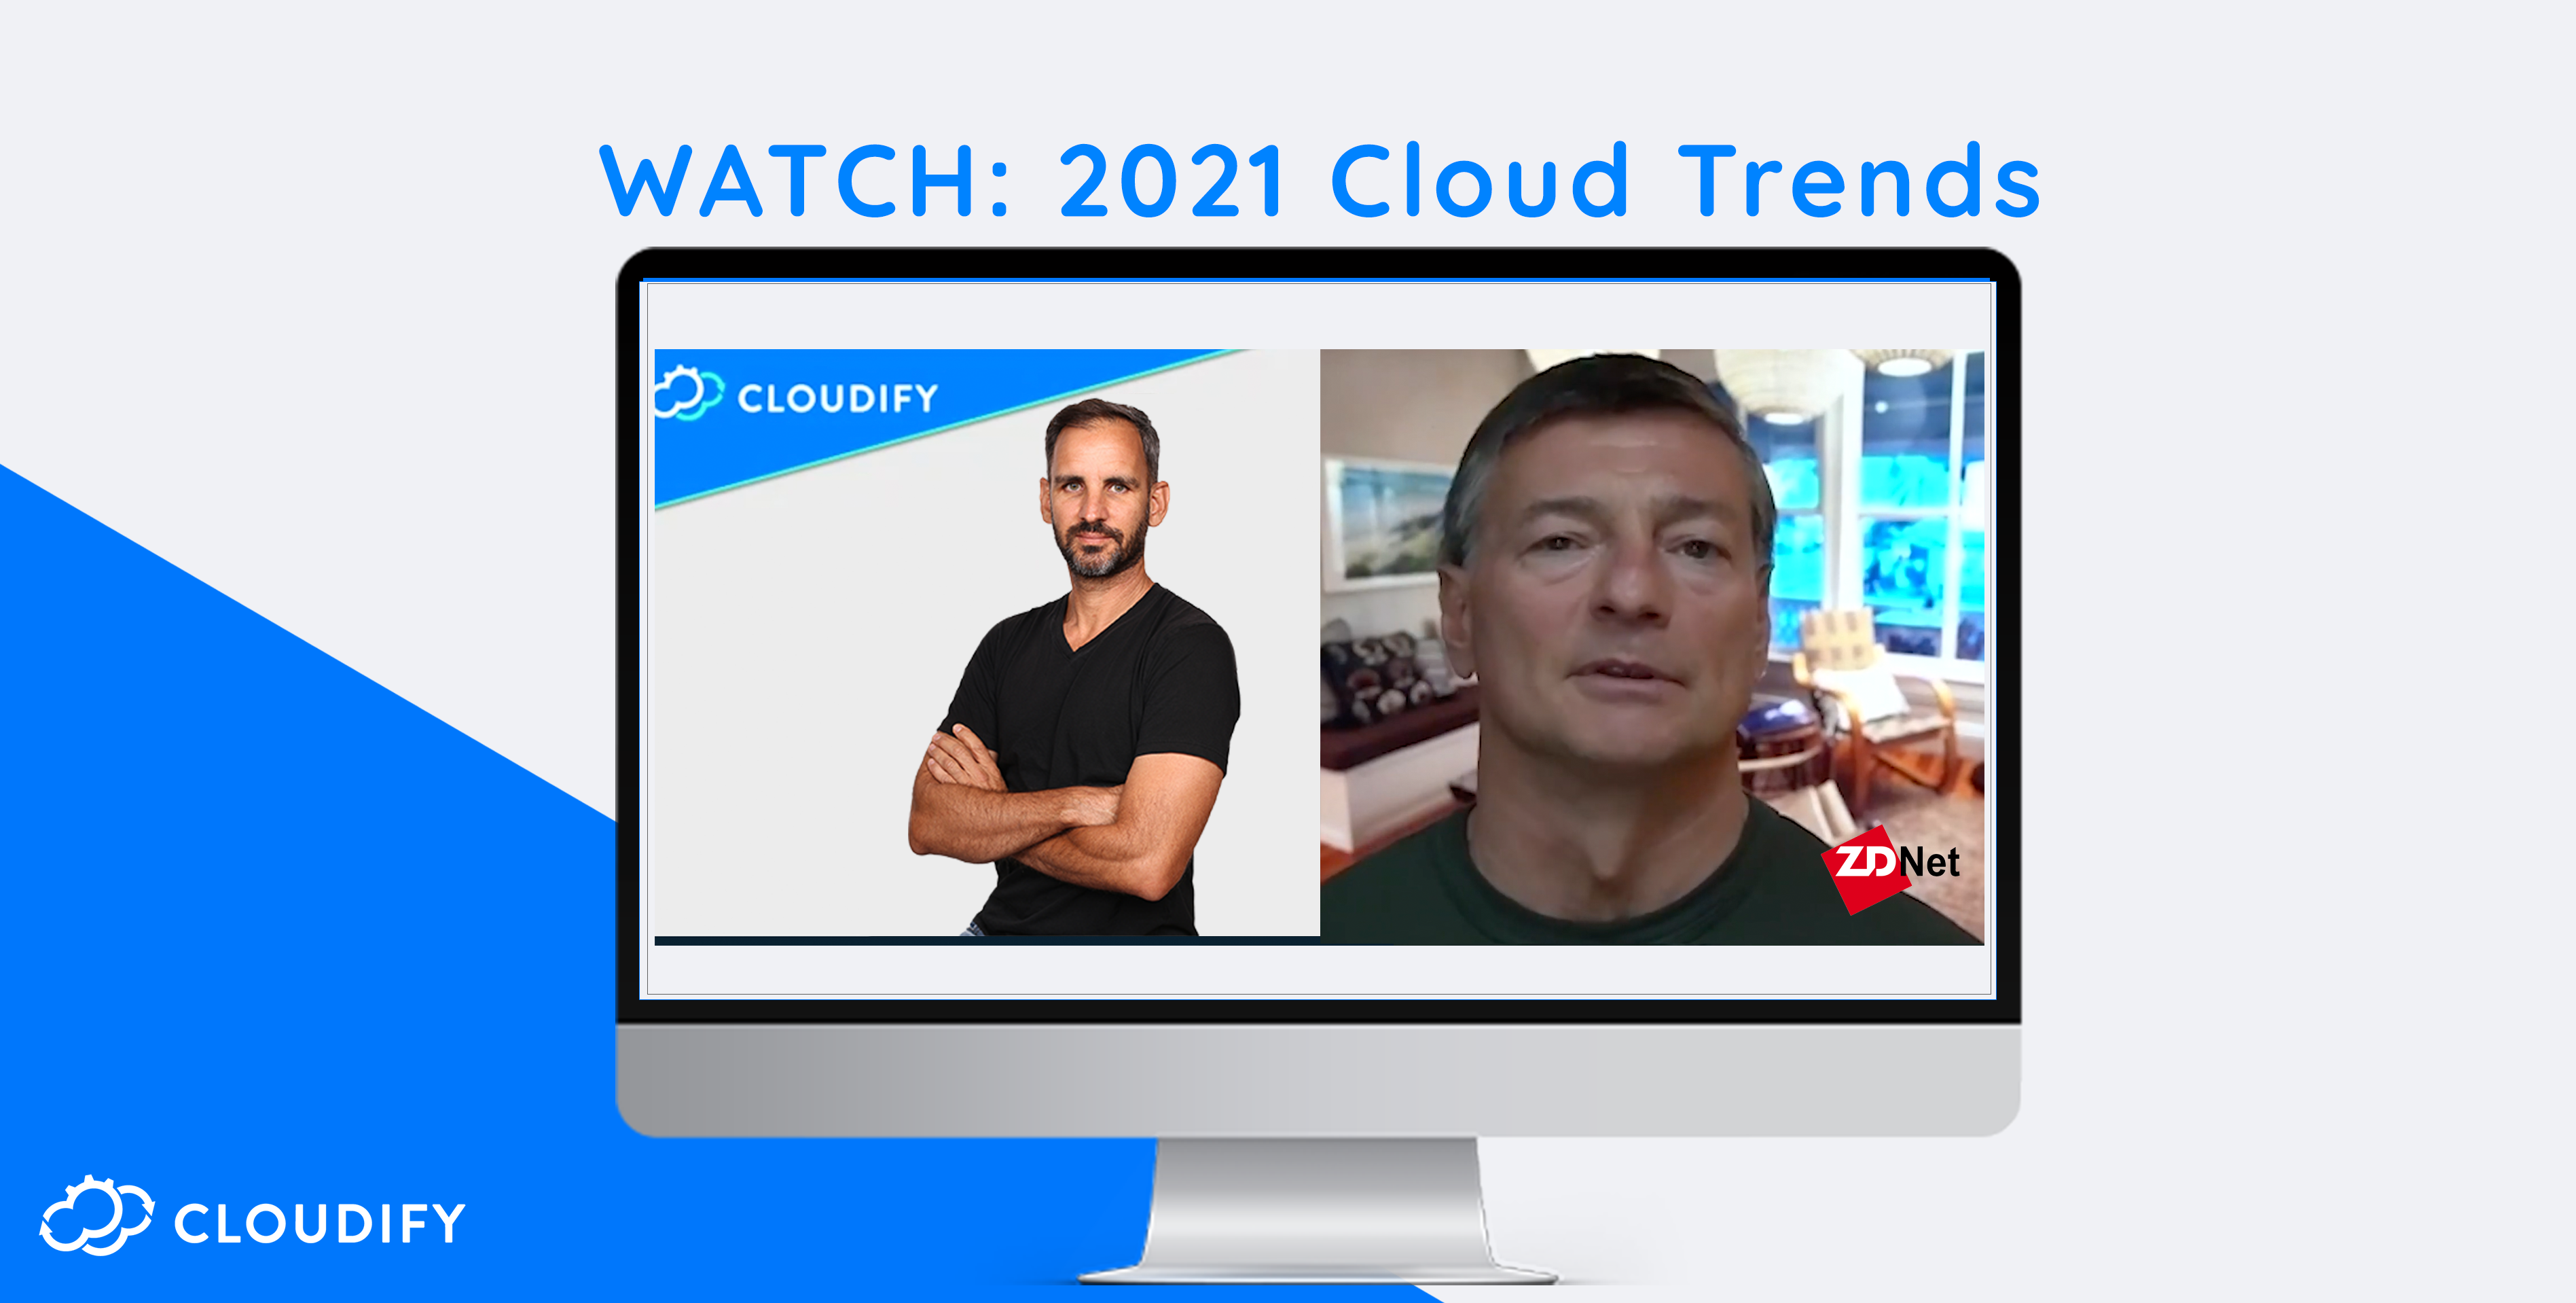 zdnre cloudify cloud trends 2021